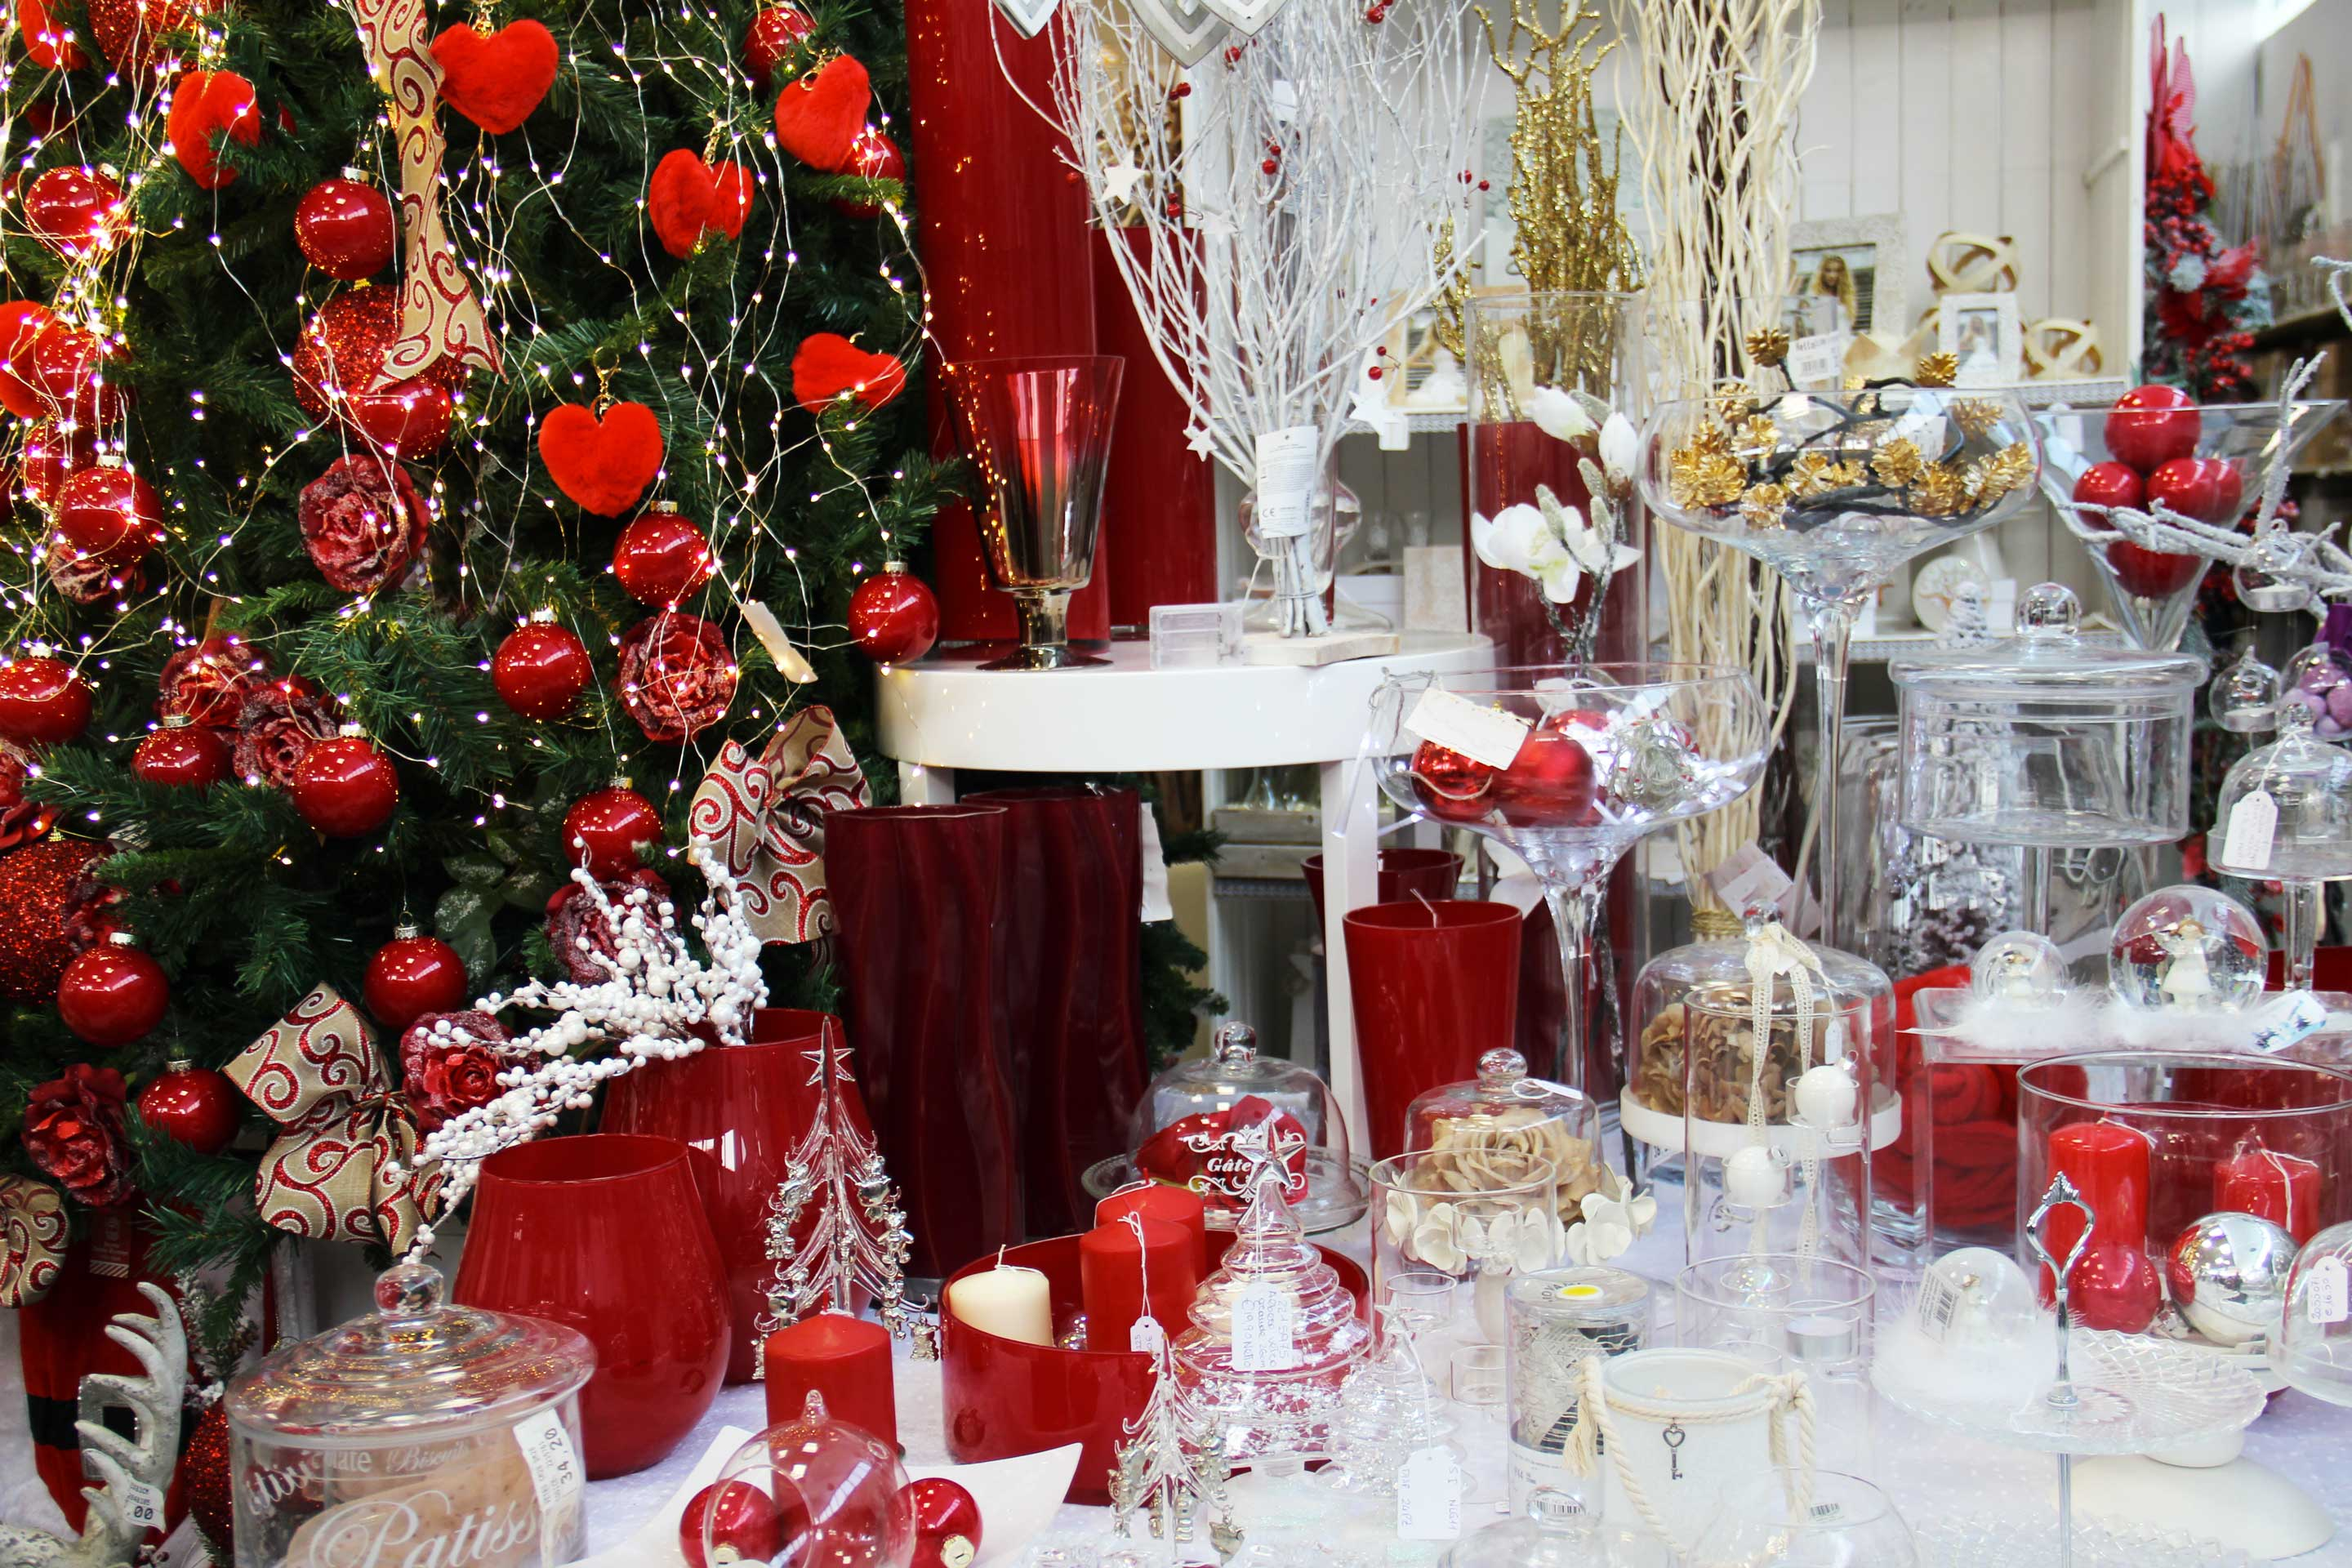 http://www.specialdays-eventi.it/wp-content/uploads/2017/11/angolo-natale-special-days-5.jpg